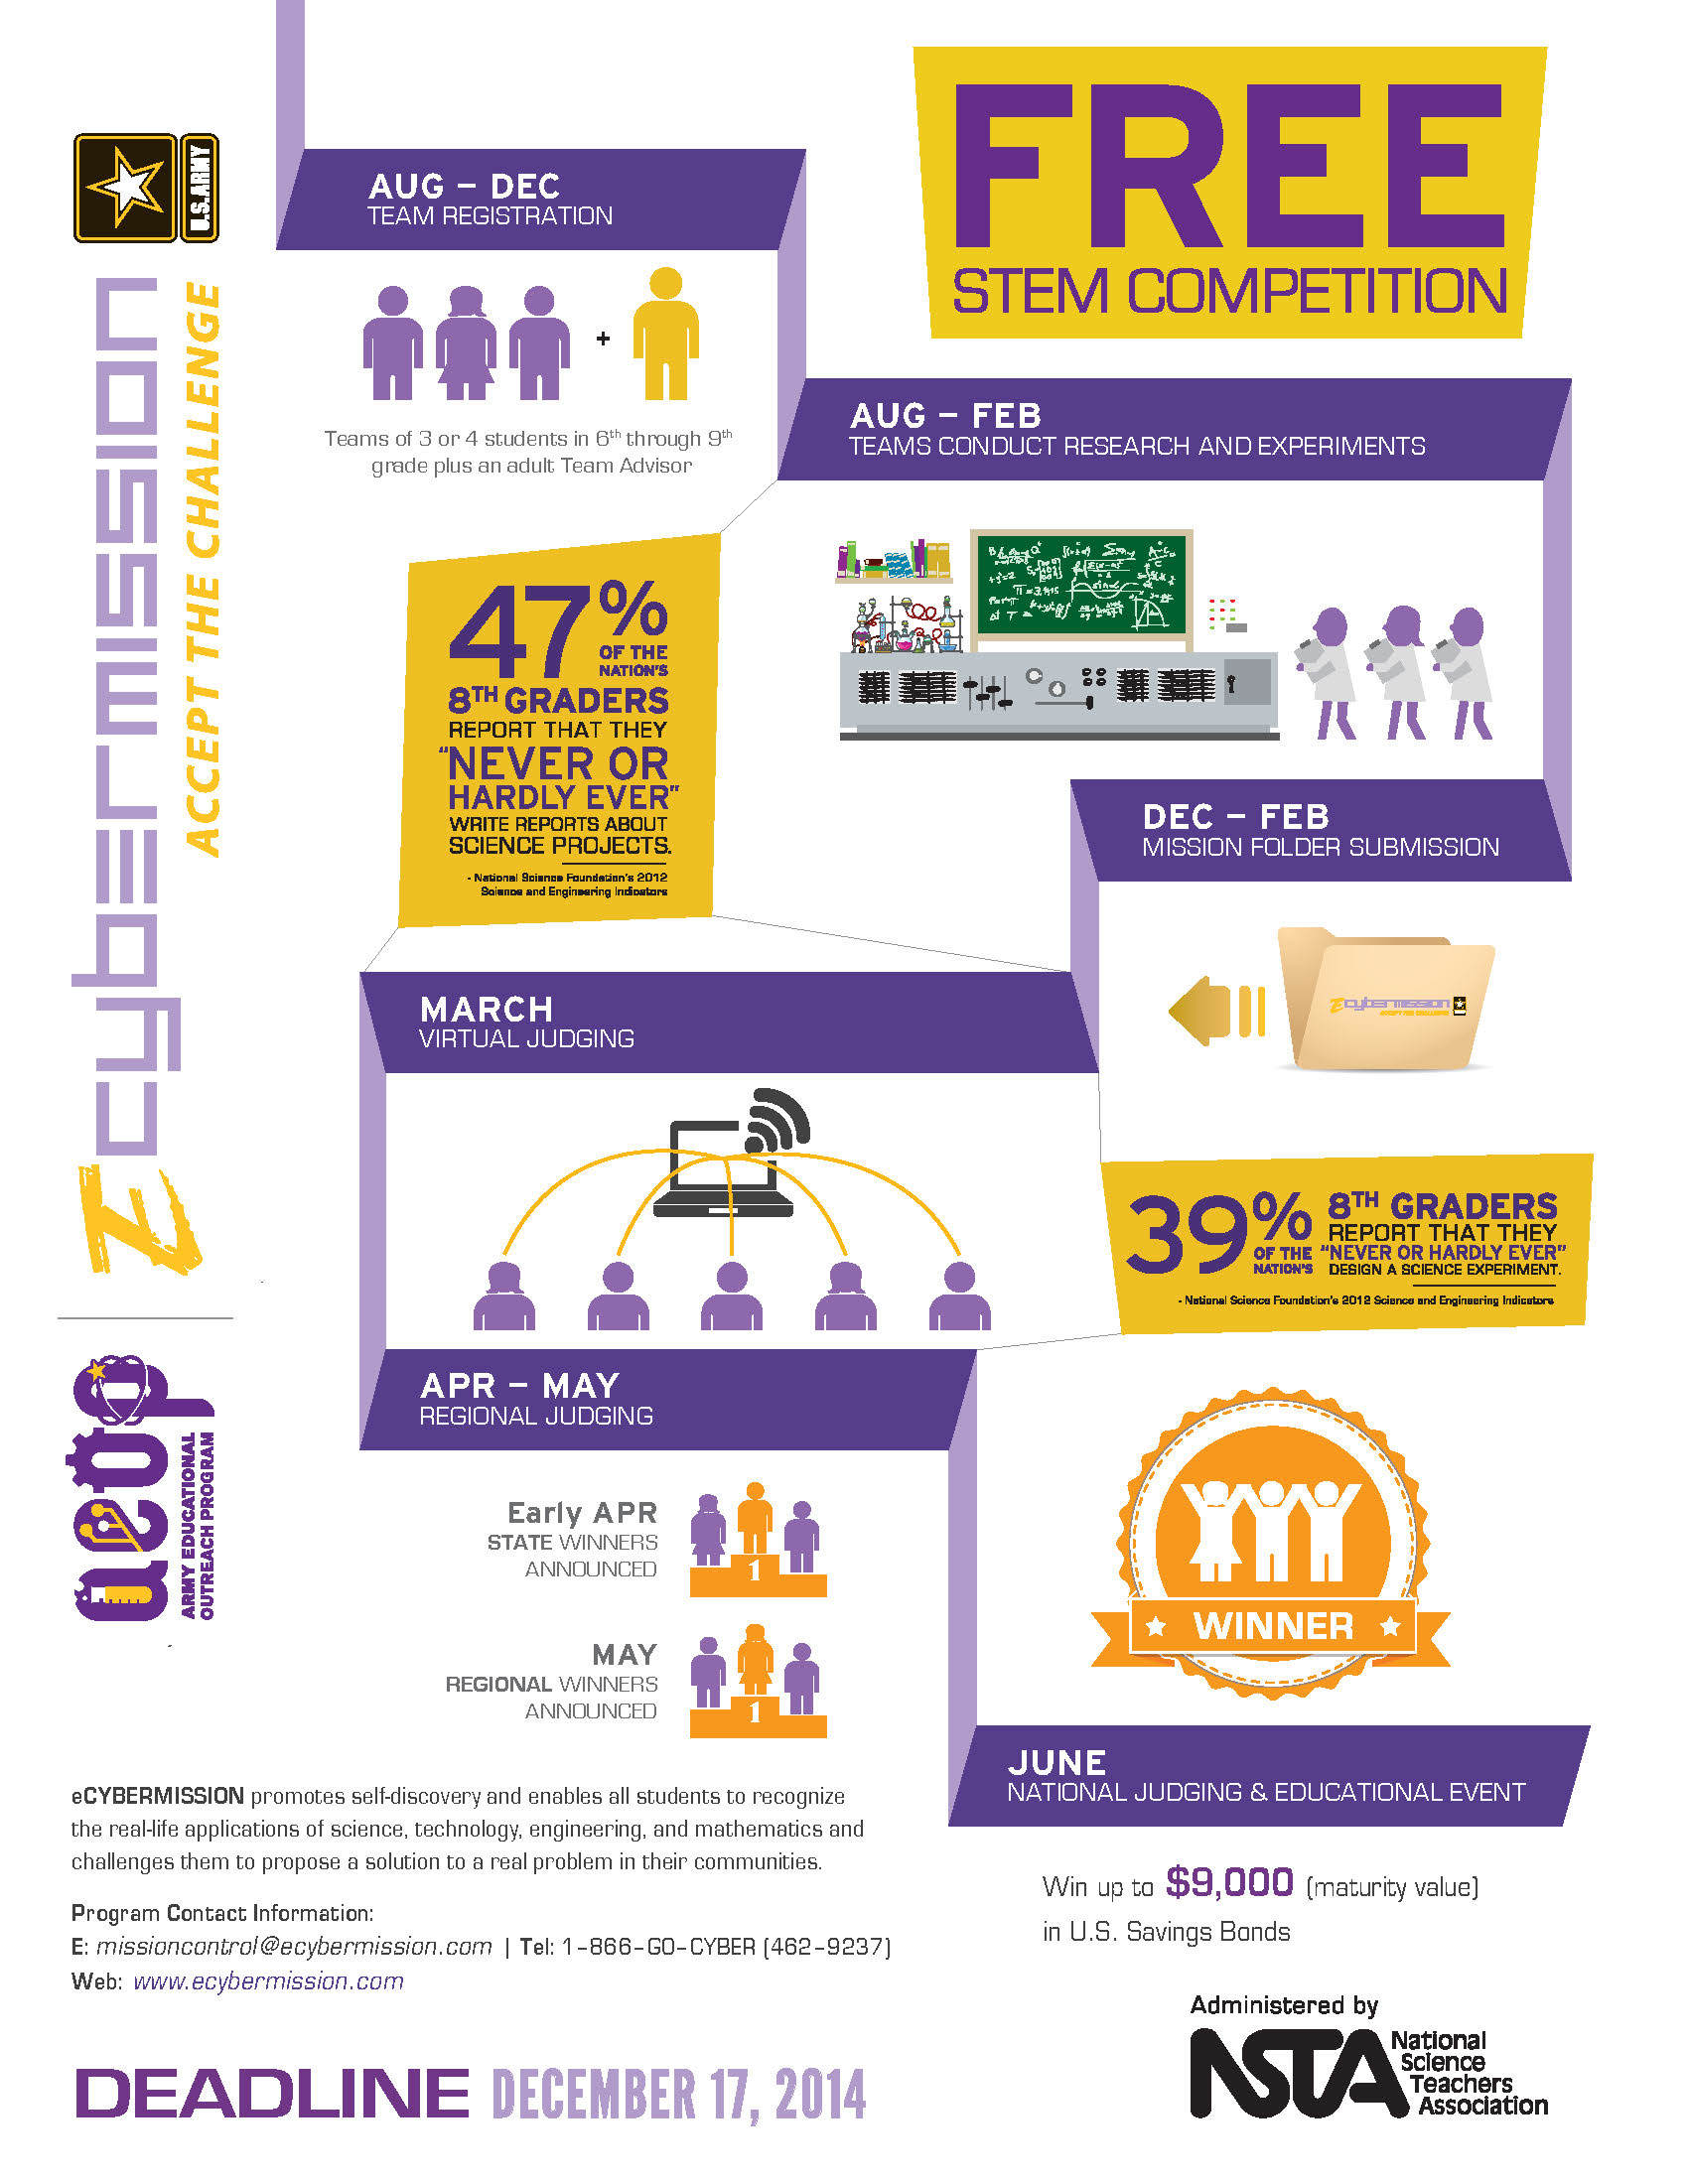 2014-2015 eCYBERMISSION Competition Timeline Infographic (Graphic: Business Wire)